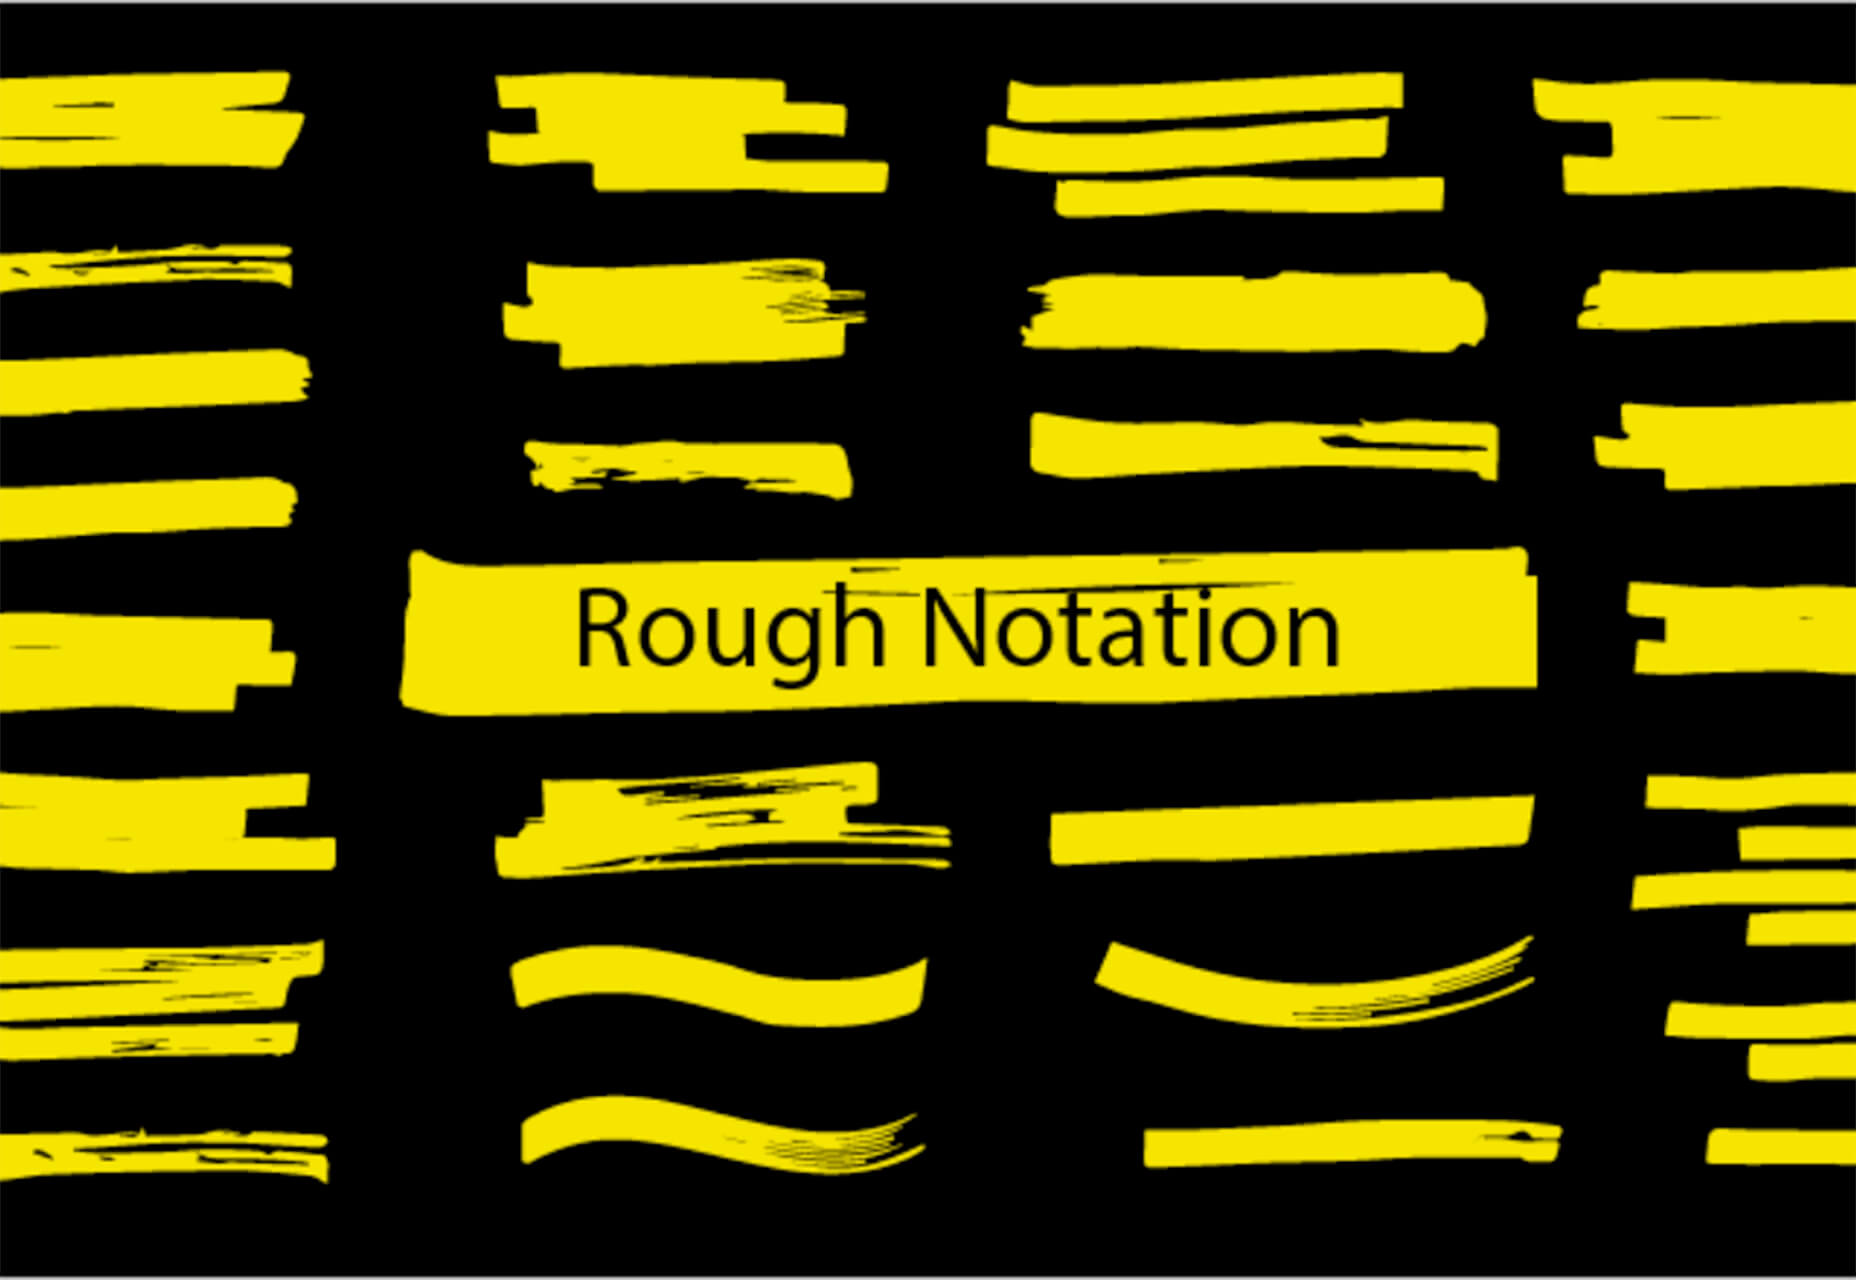 roughnotation